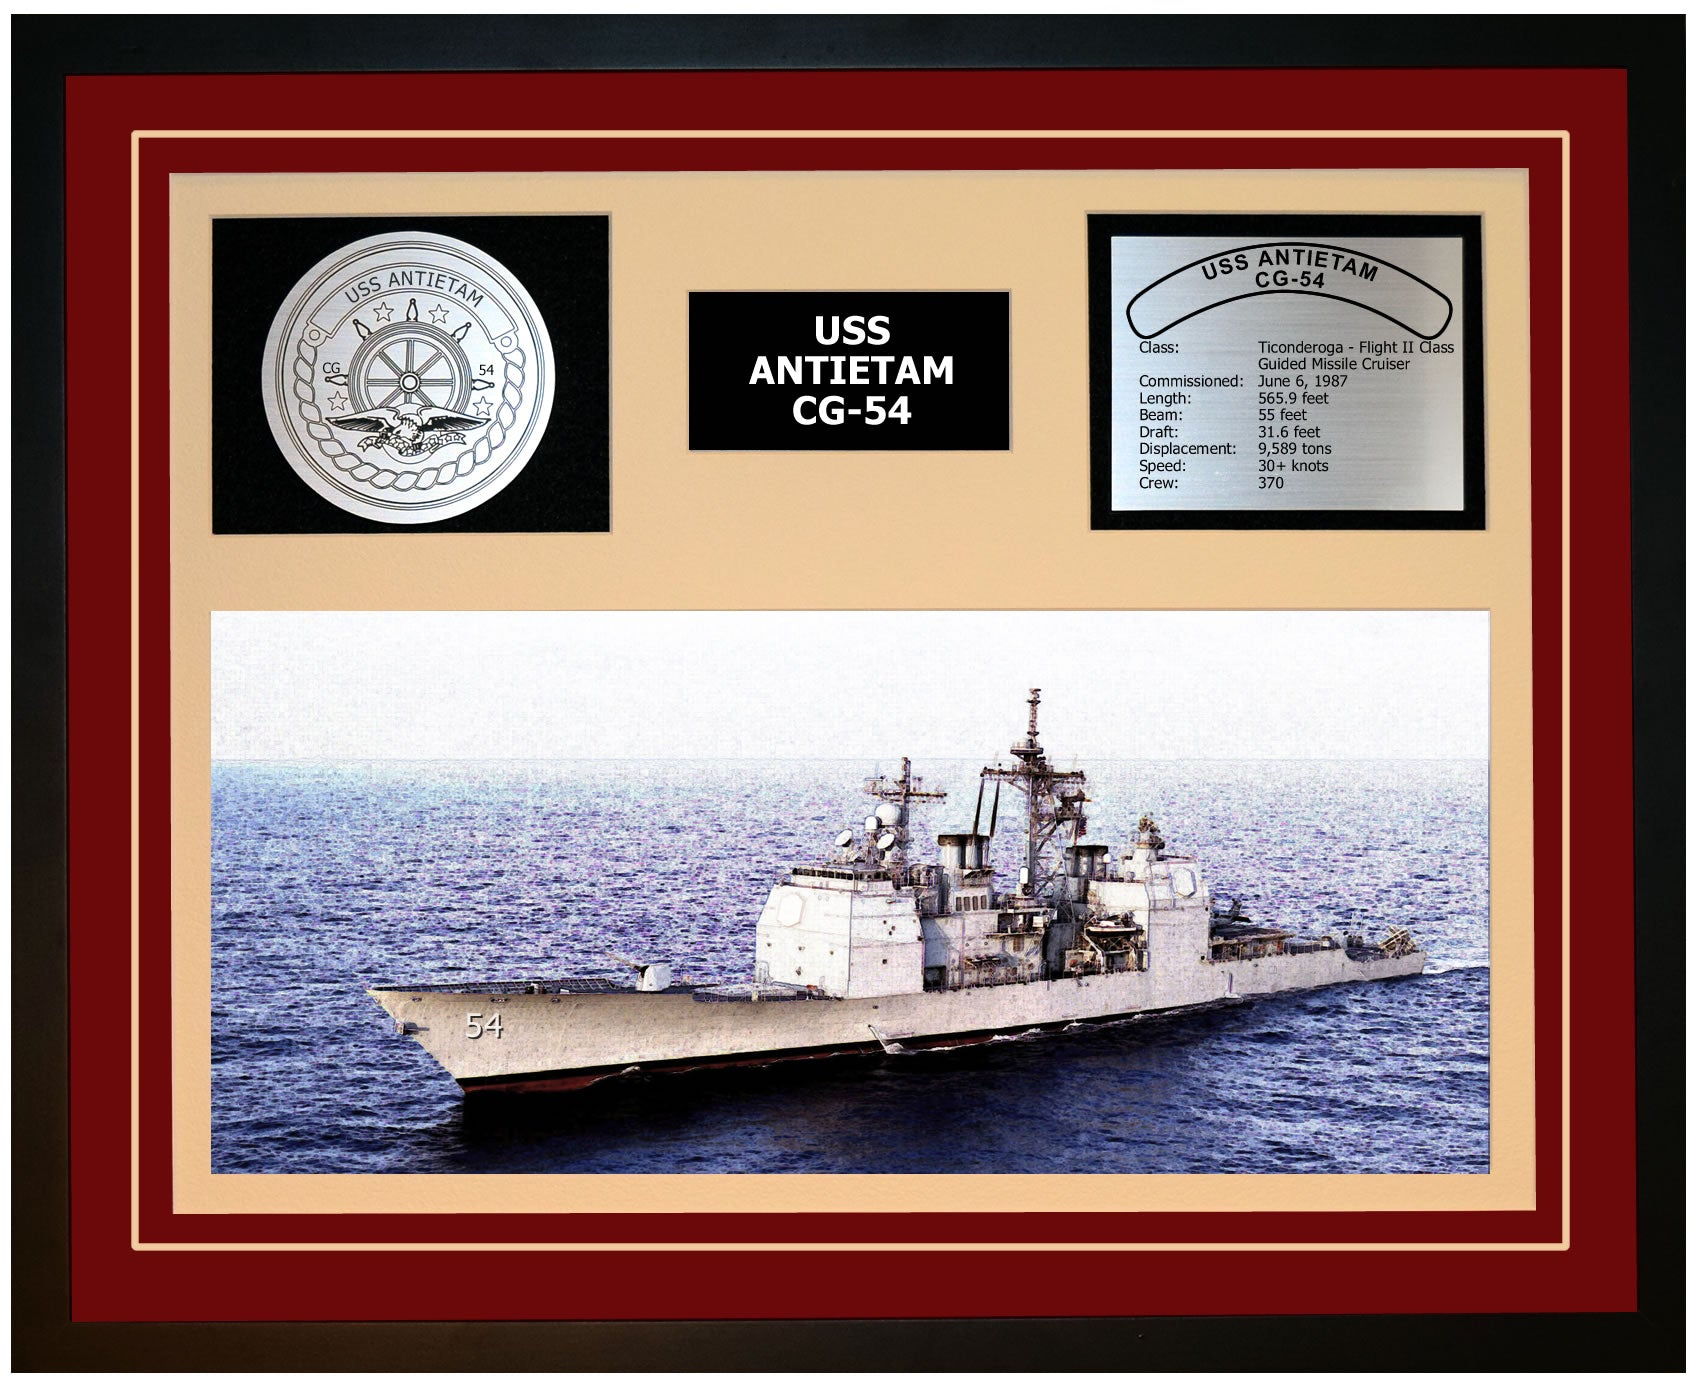 USS ANTIETAM CG-54 Framed Navy Ship Display Burgundy